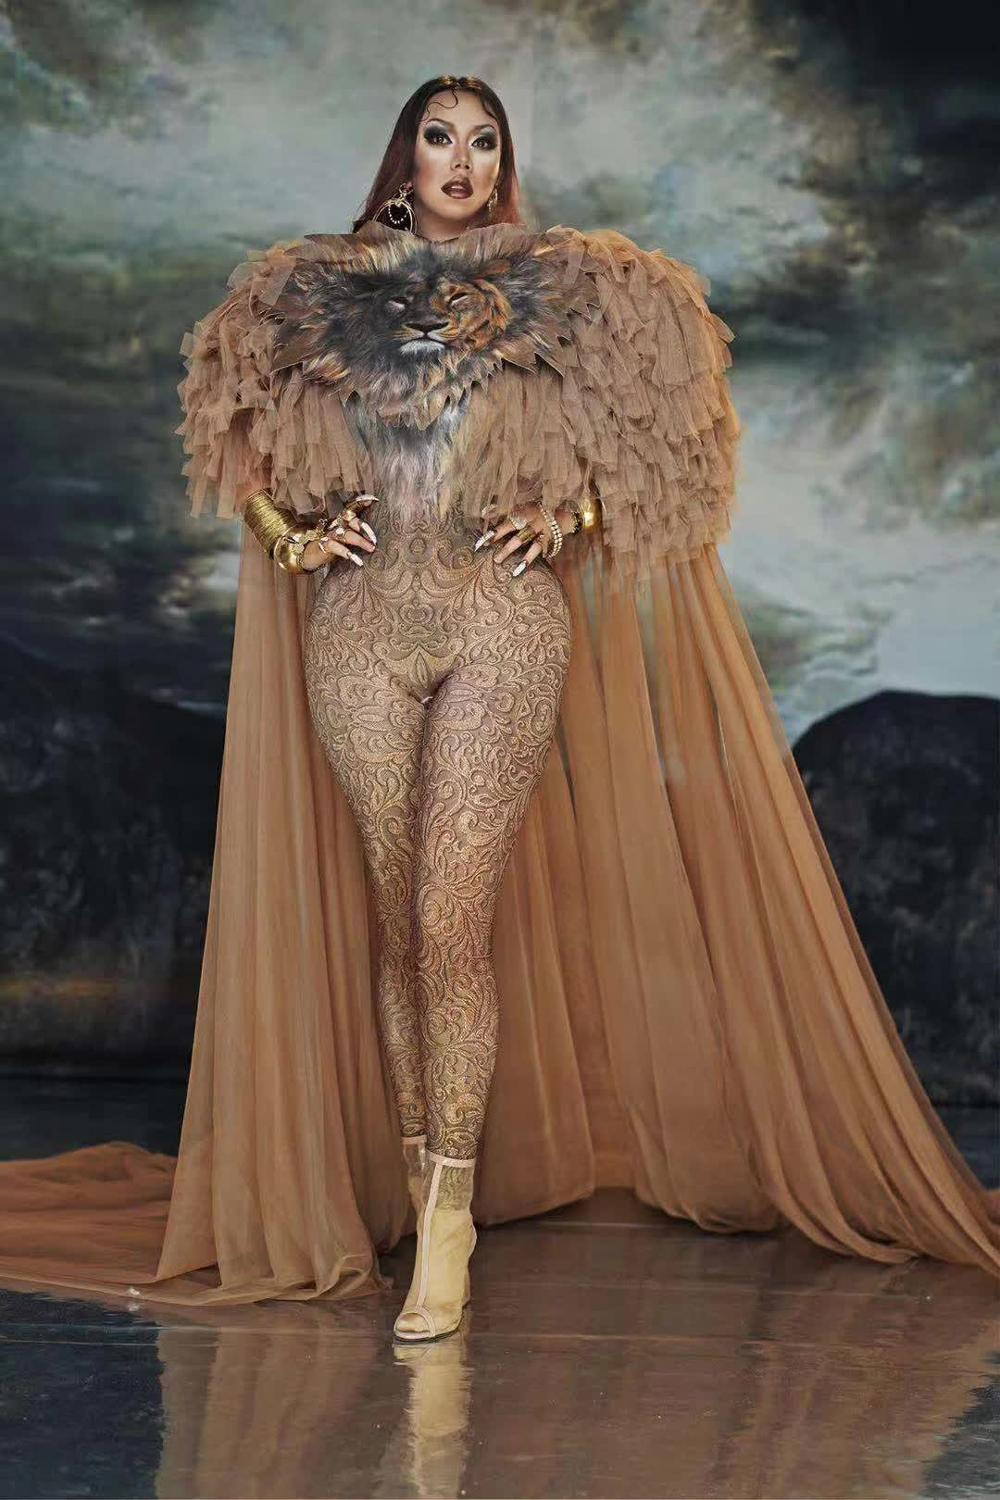 High Quality The lion king Print High Elasticity Jumpsuit Nightclub Party Bodycon costumes